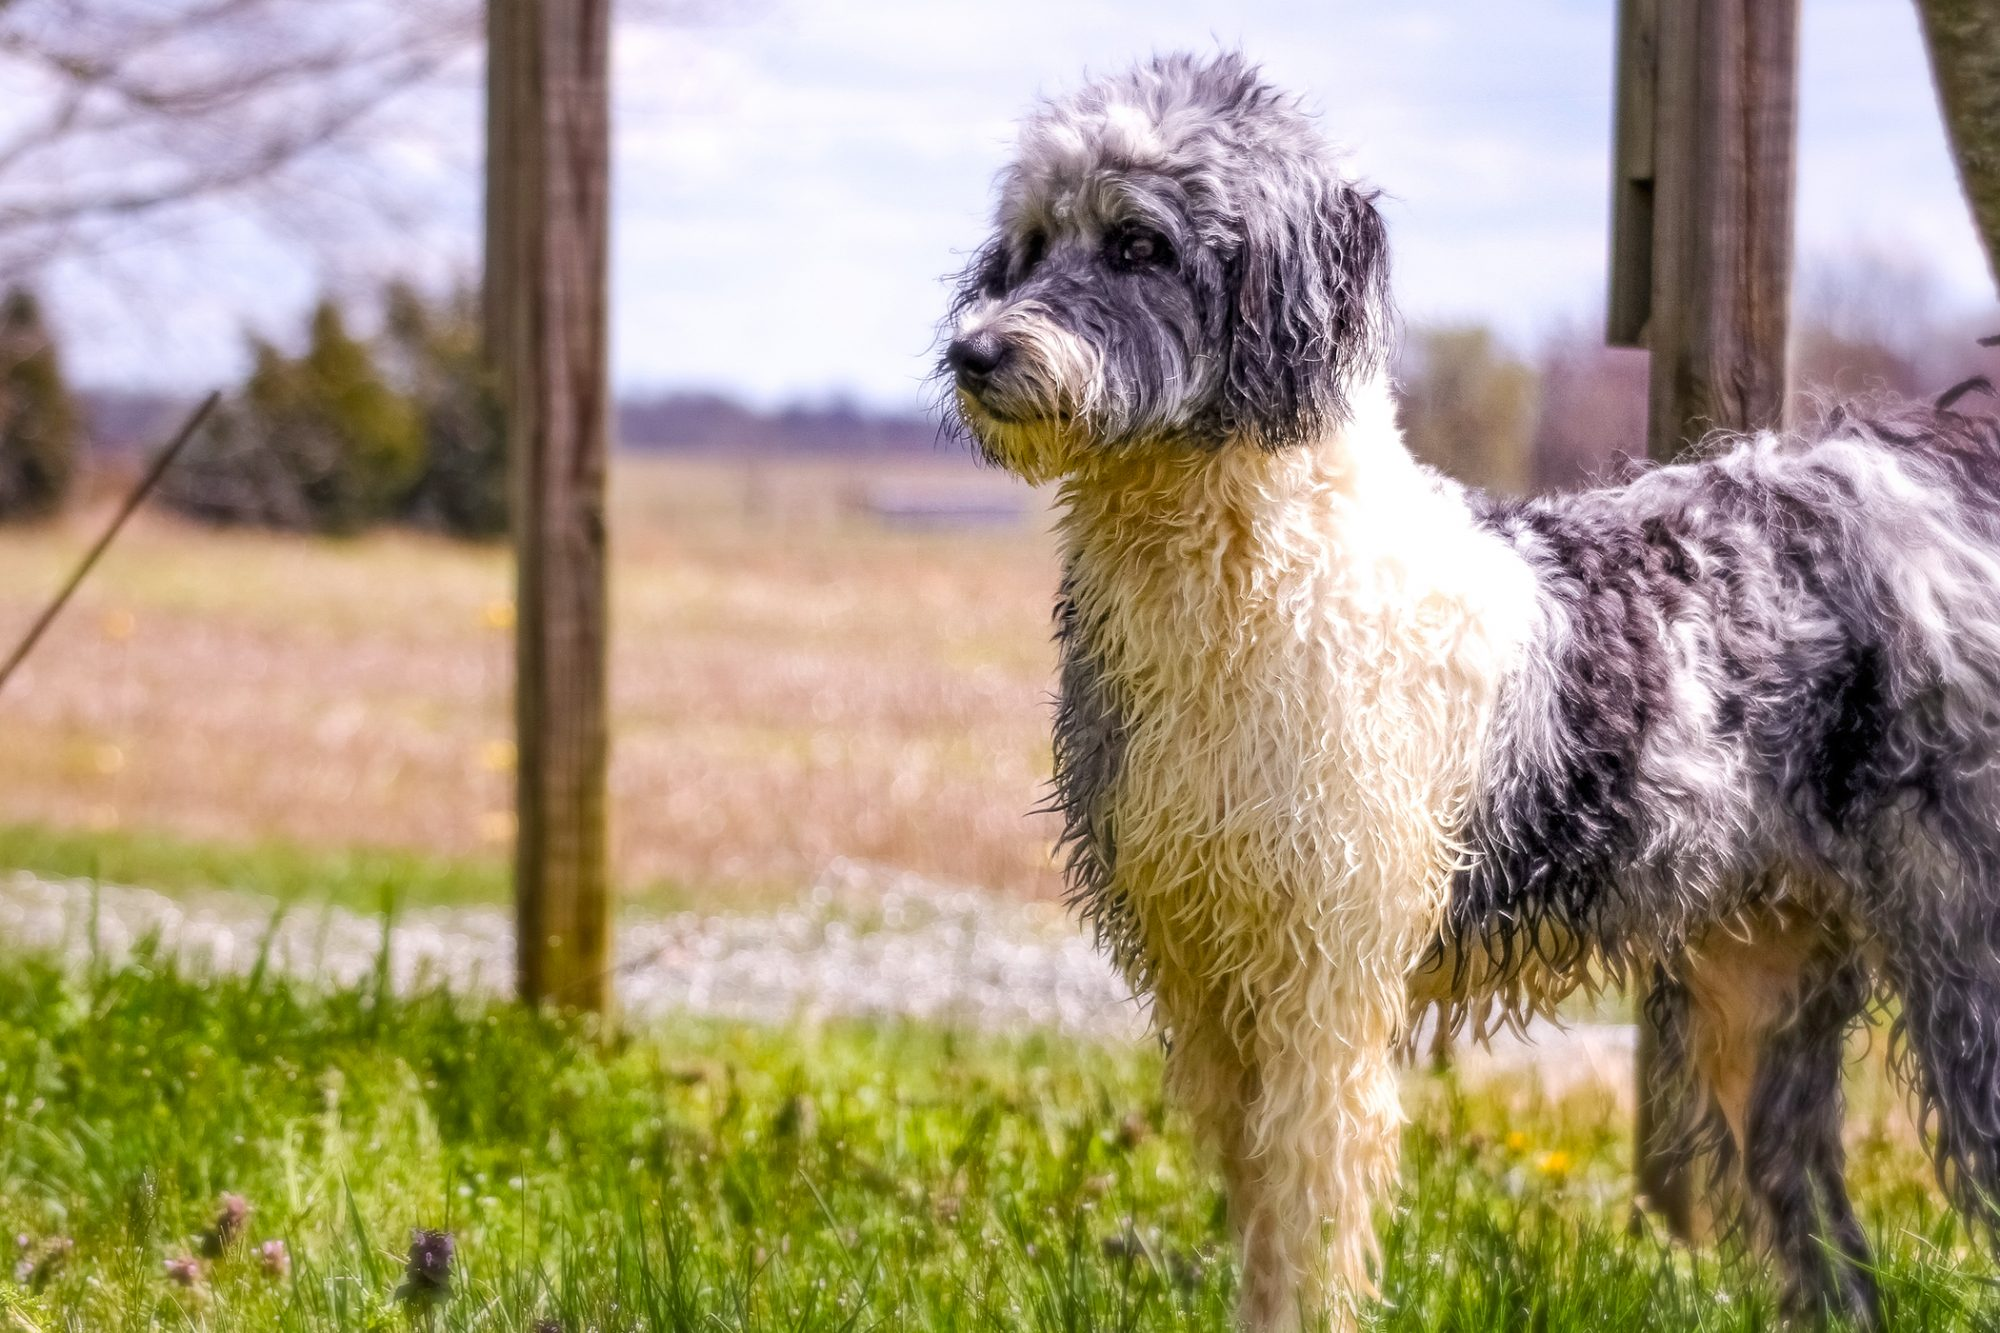 Aussiedoodle cream and grey dog stands outside in front of wooden posts